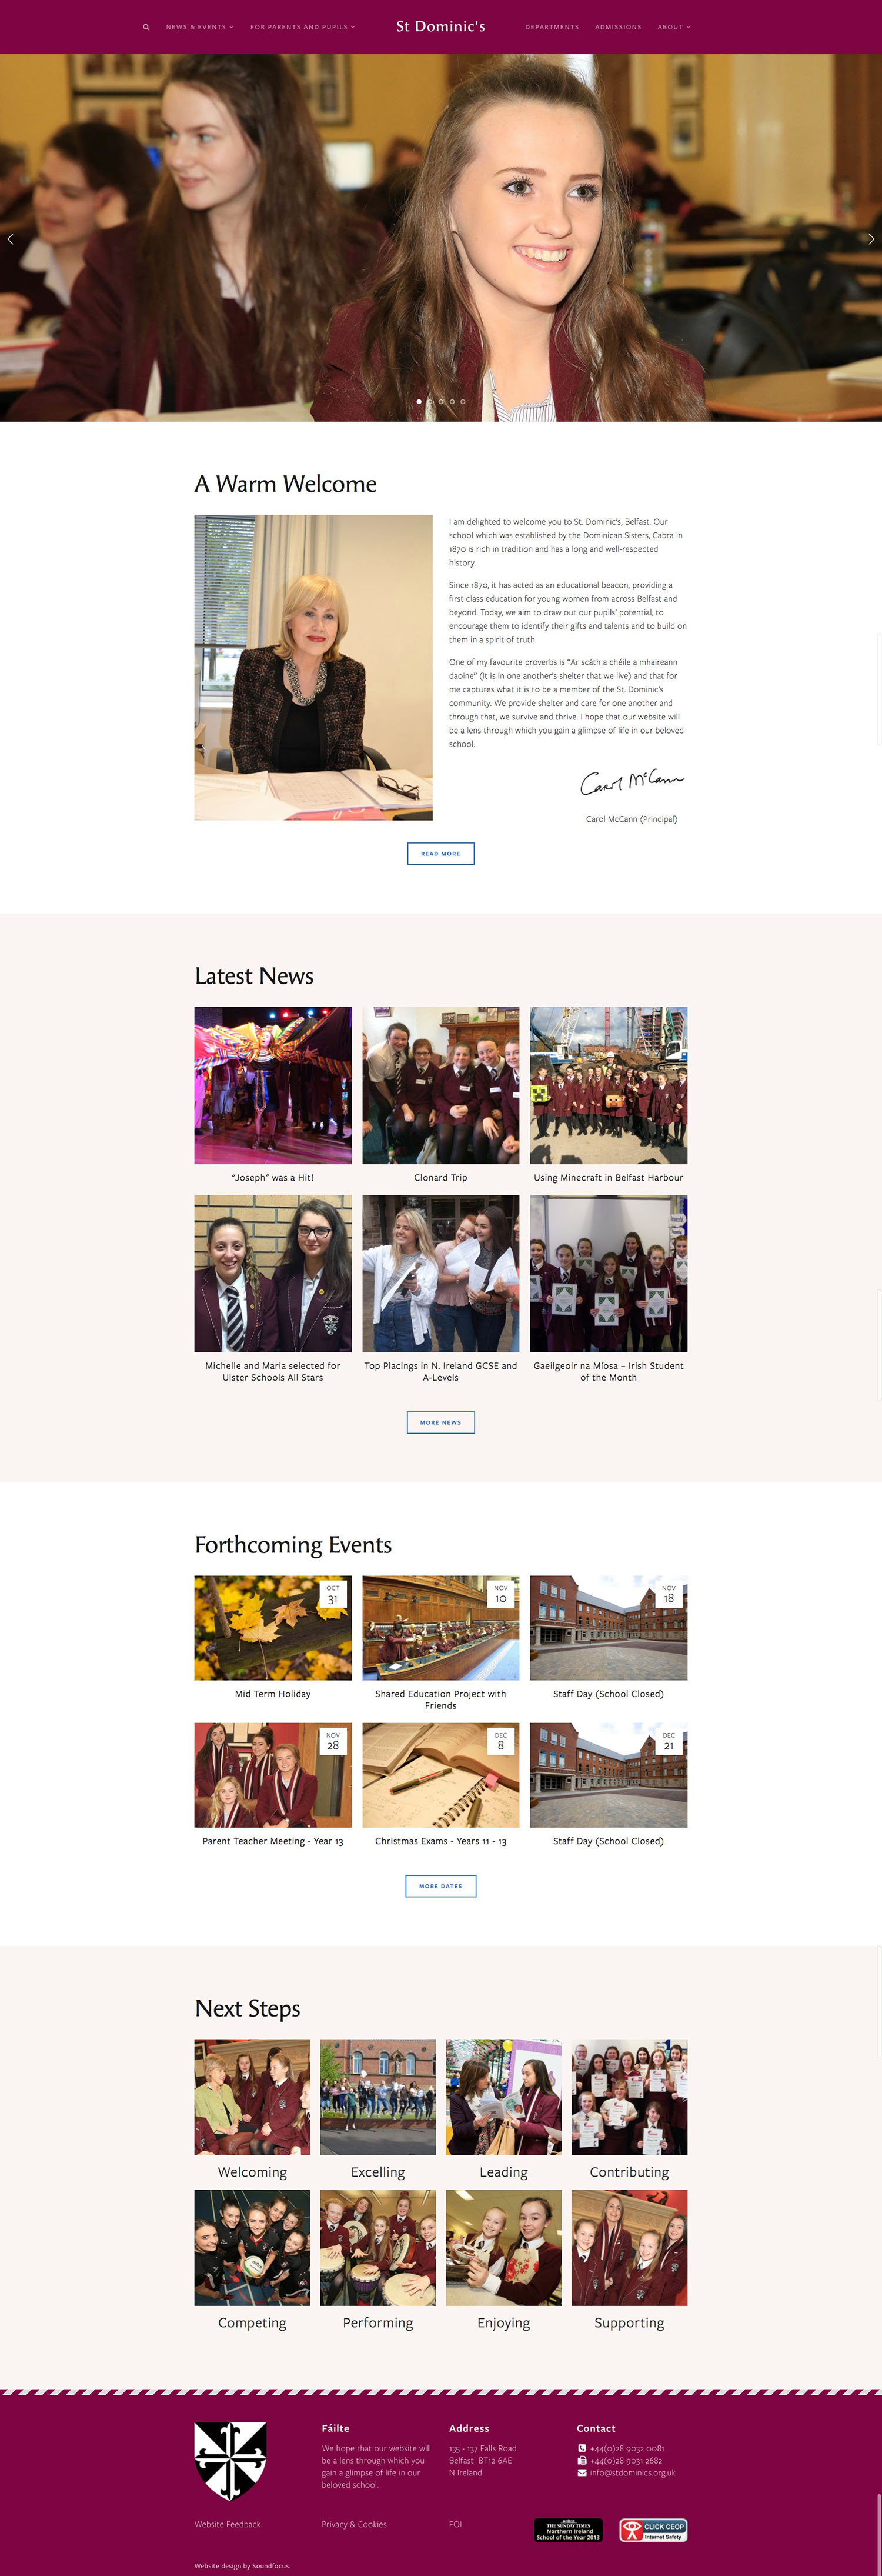 Responsive Home Page of Grammar School Website